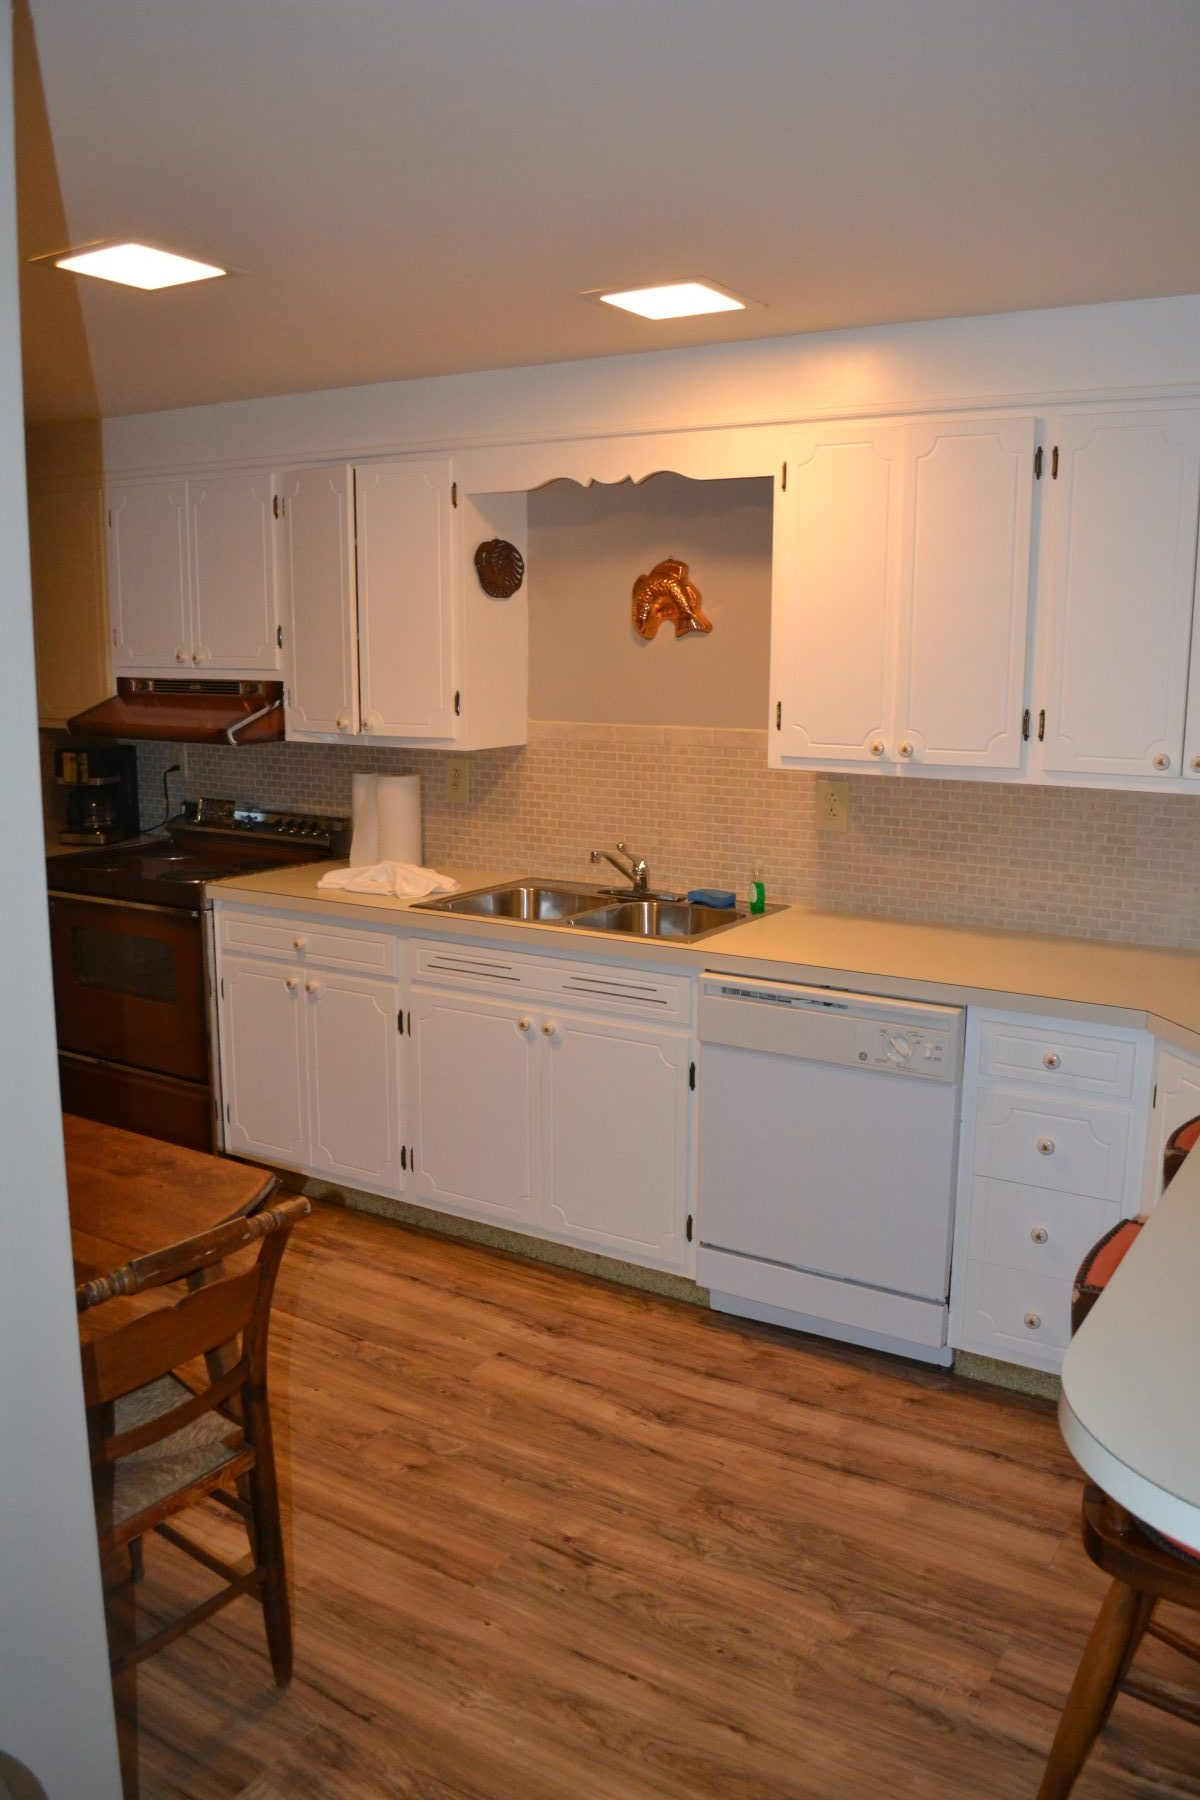 White cabinets in kitchen with wood flooring